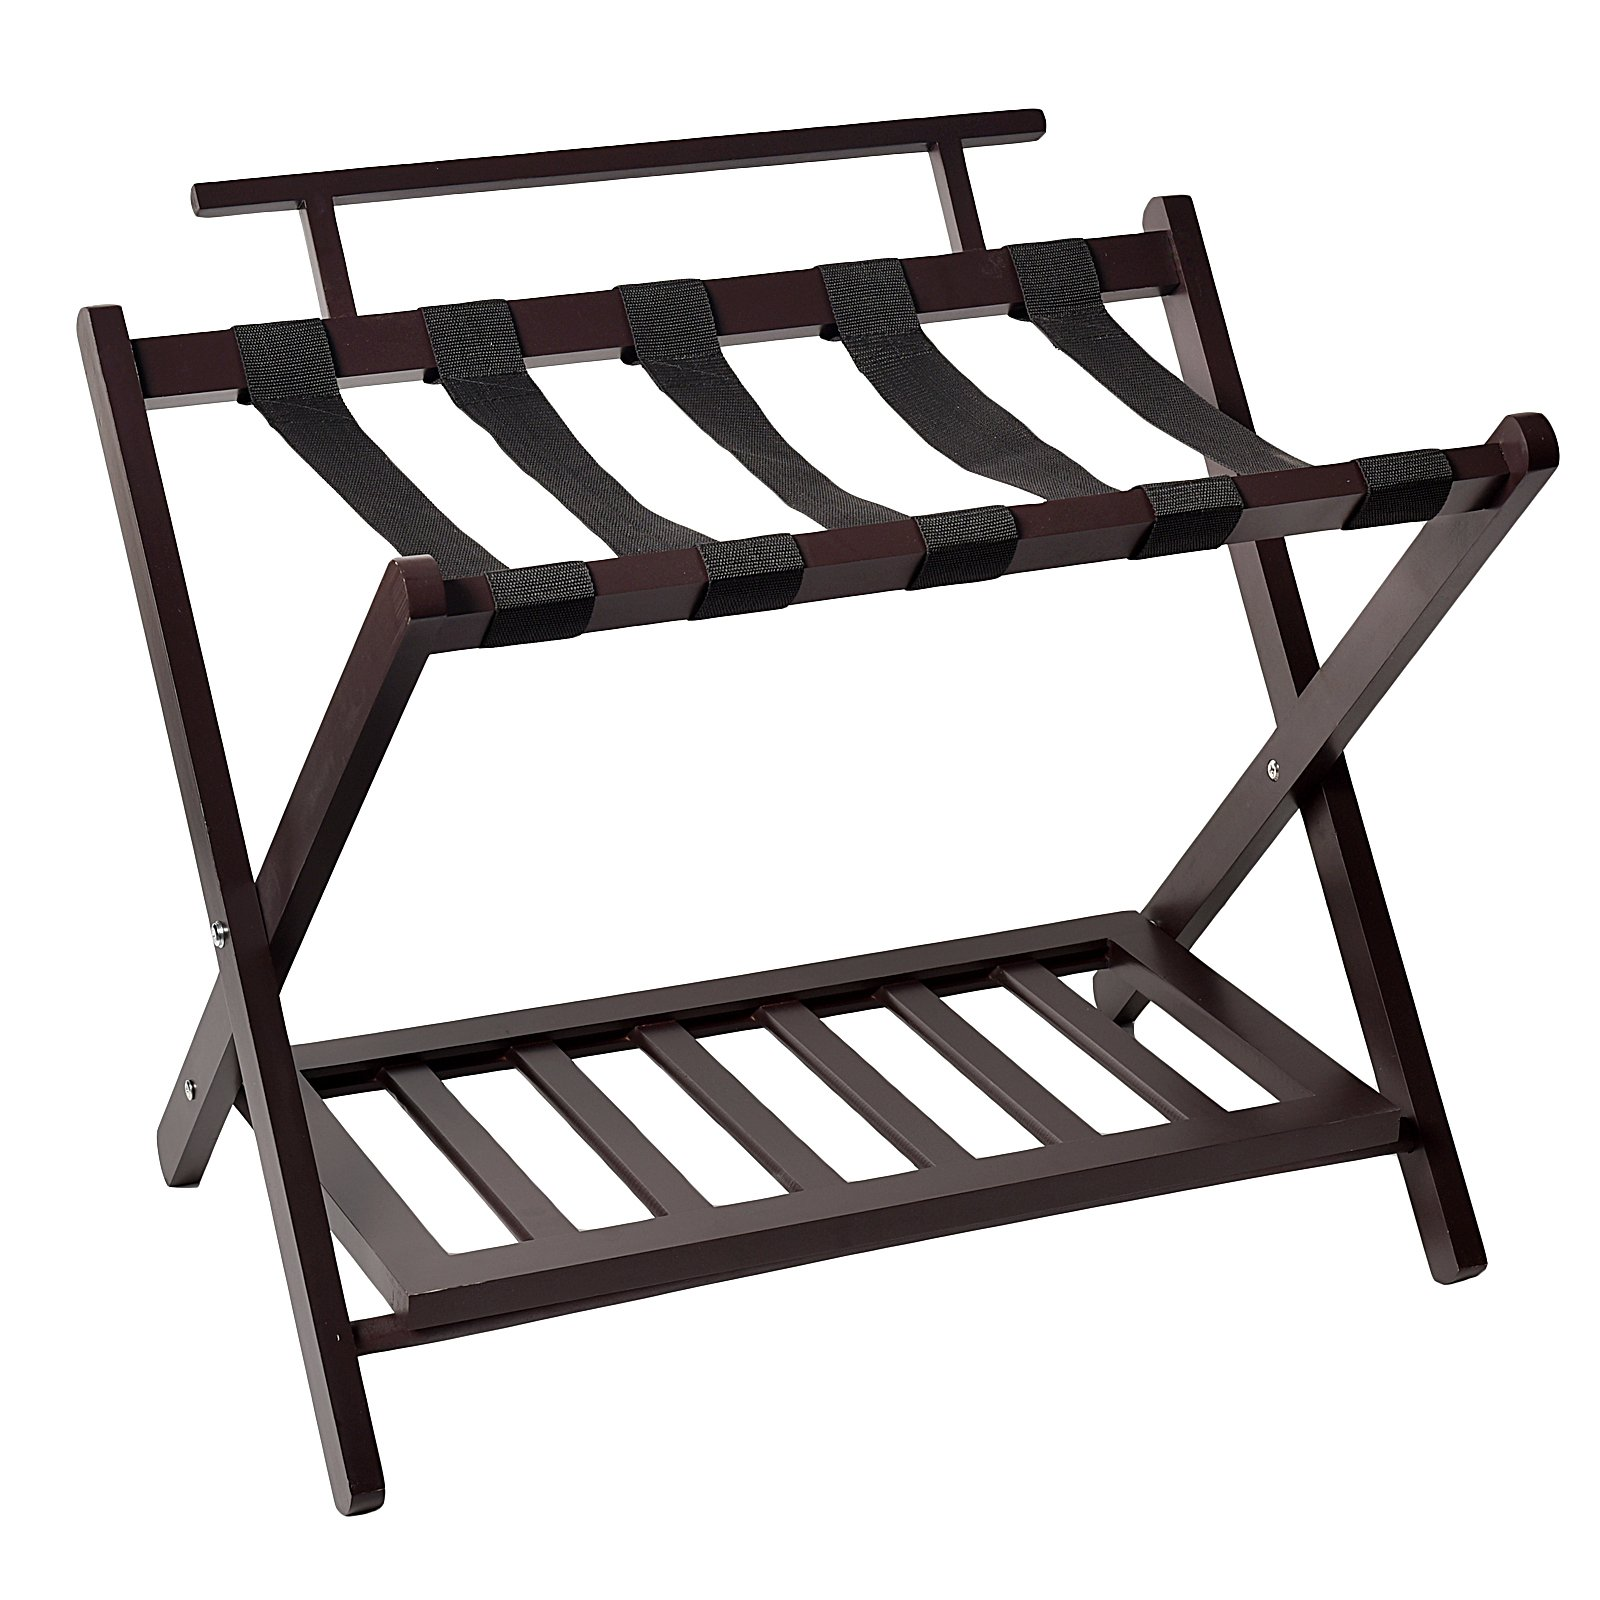 WELLAND Wood Wall Saver Folding Luggage Rack With Shelf,Espresso